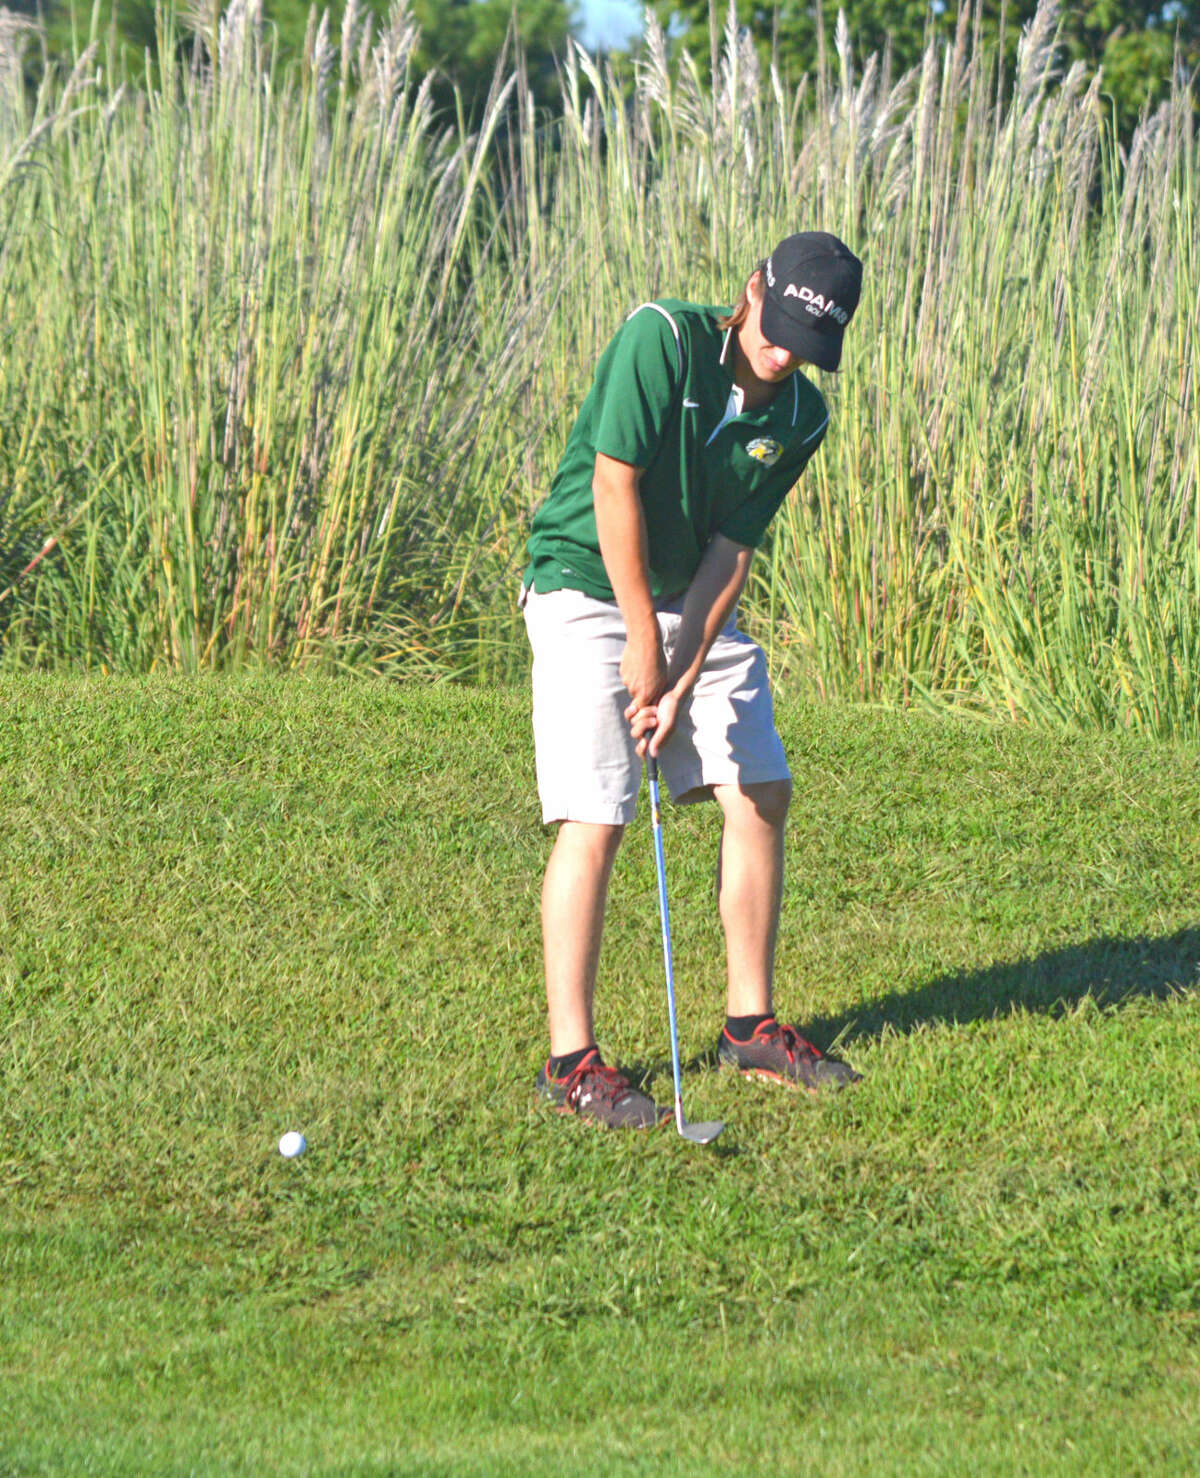 Metro-East Lutheran senior Lucas Scheibal hits a chip shot on hole No. 7 at Timber Lakes Golf Course during Monday's dual match against Staunton.